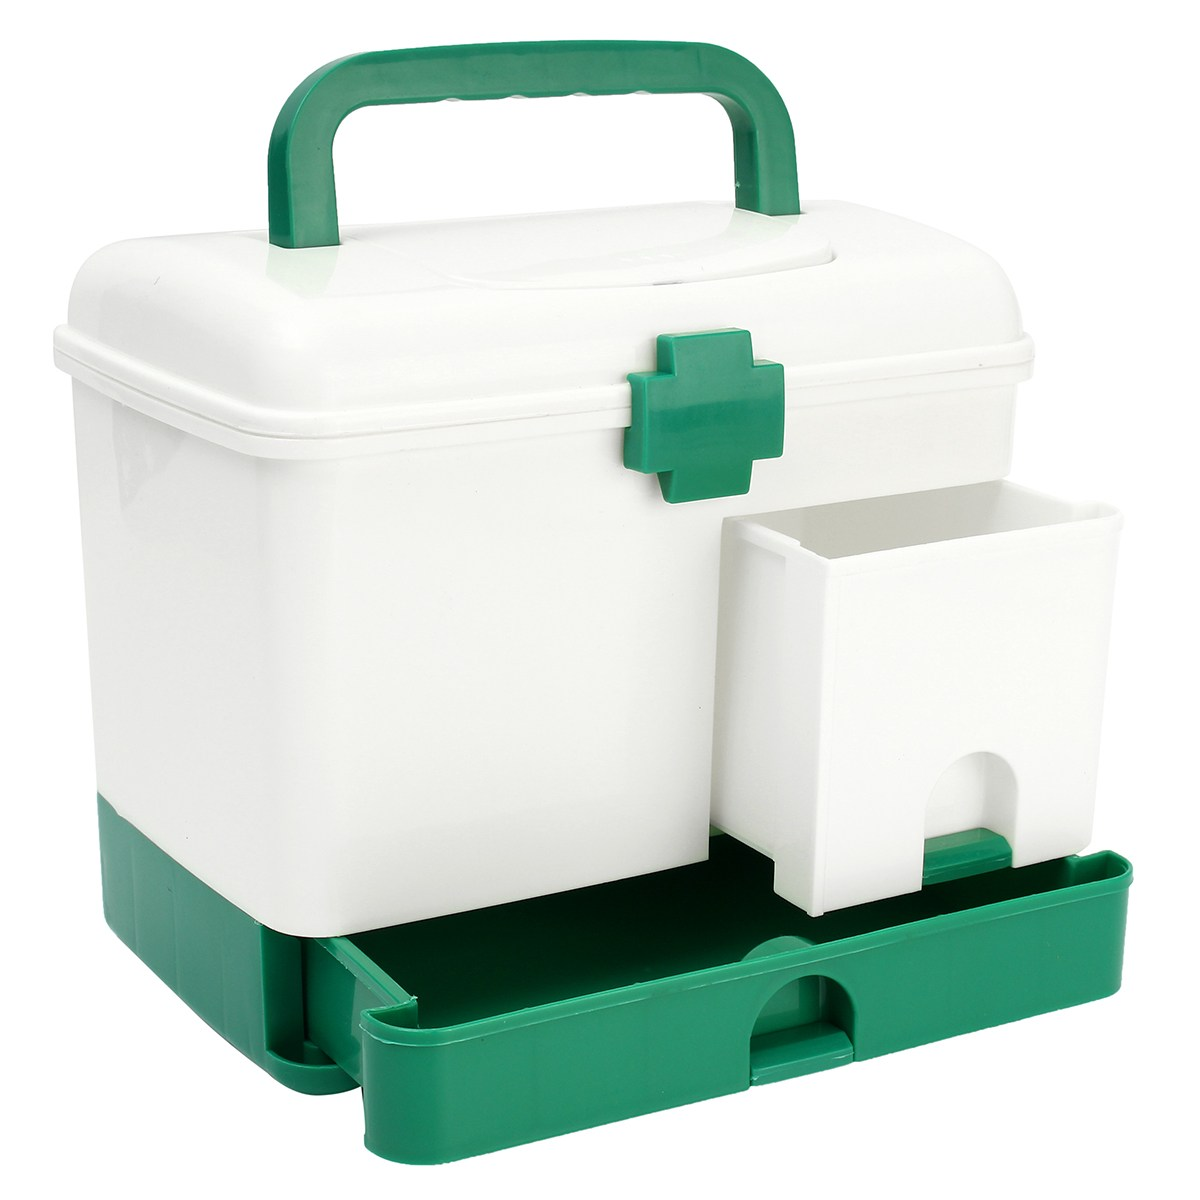 NEW 3 Layer Health Box Medicine Chest Handle First Aid Kit Storage Organizer Drawer Outdoor Camping Hiking Emergency first aid for the emergency medicine boards